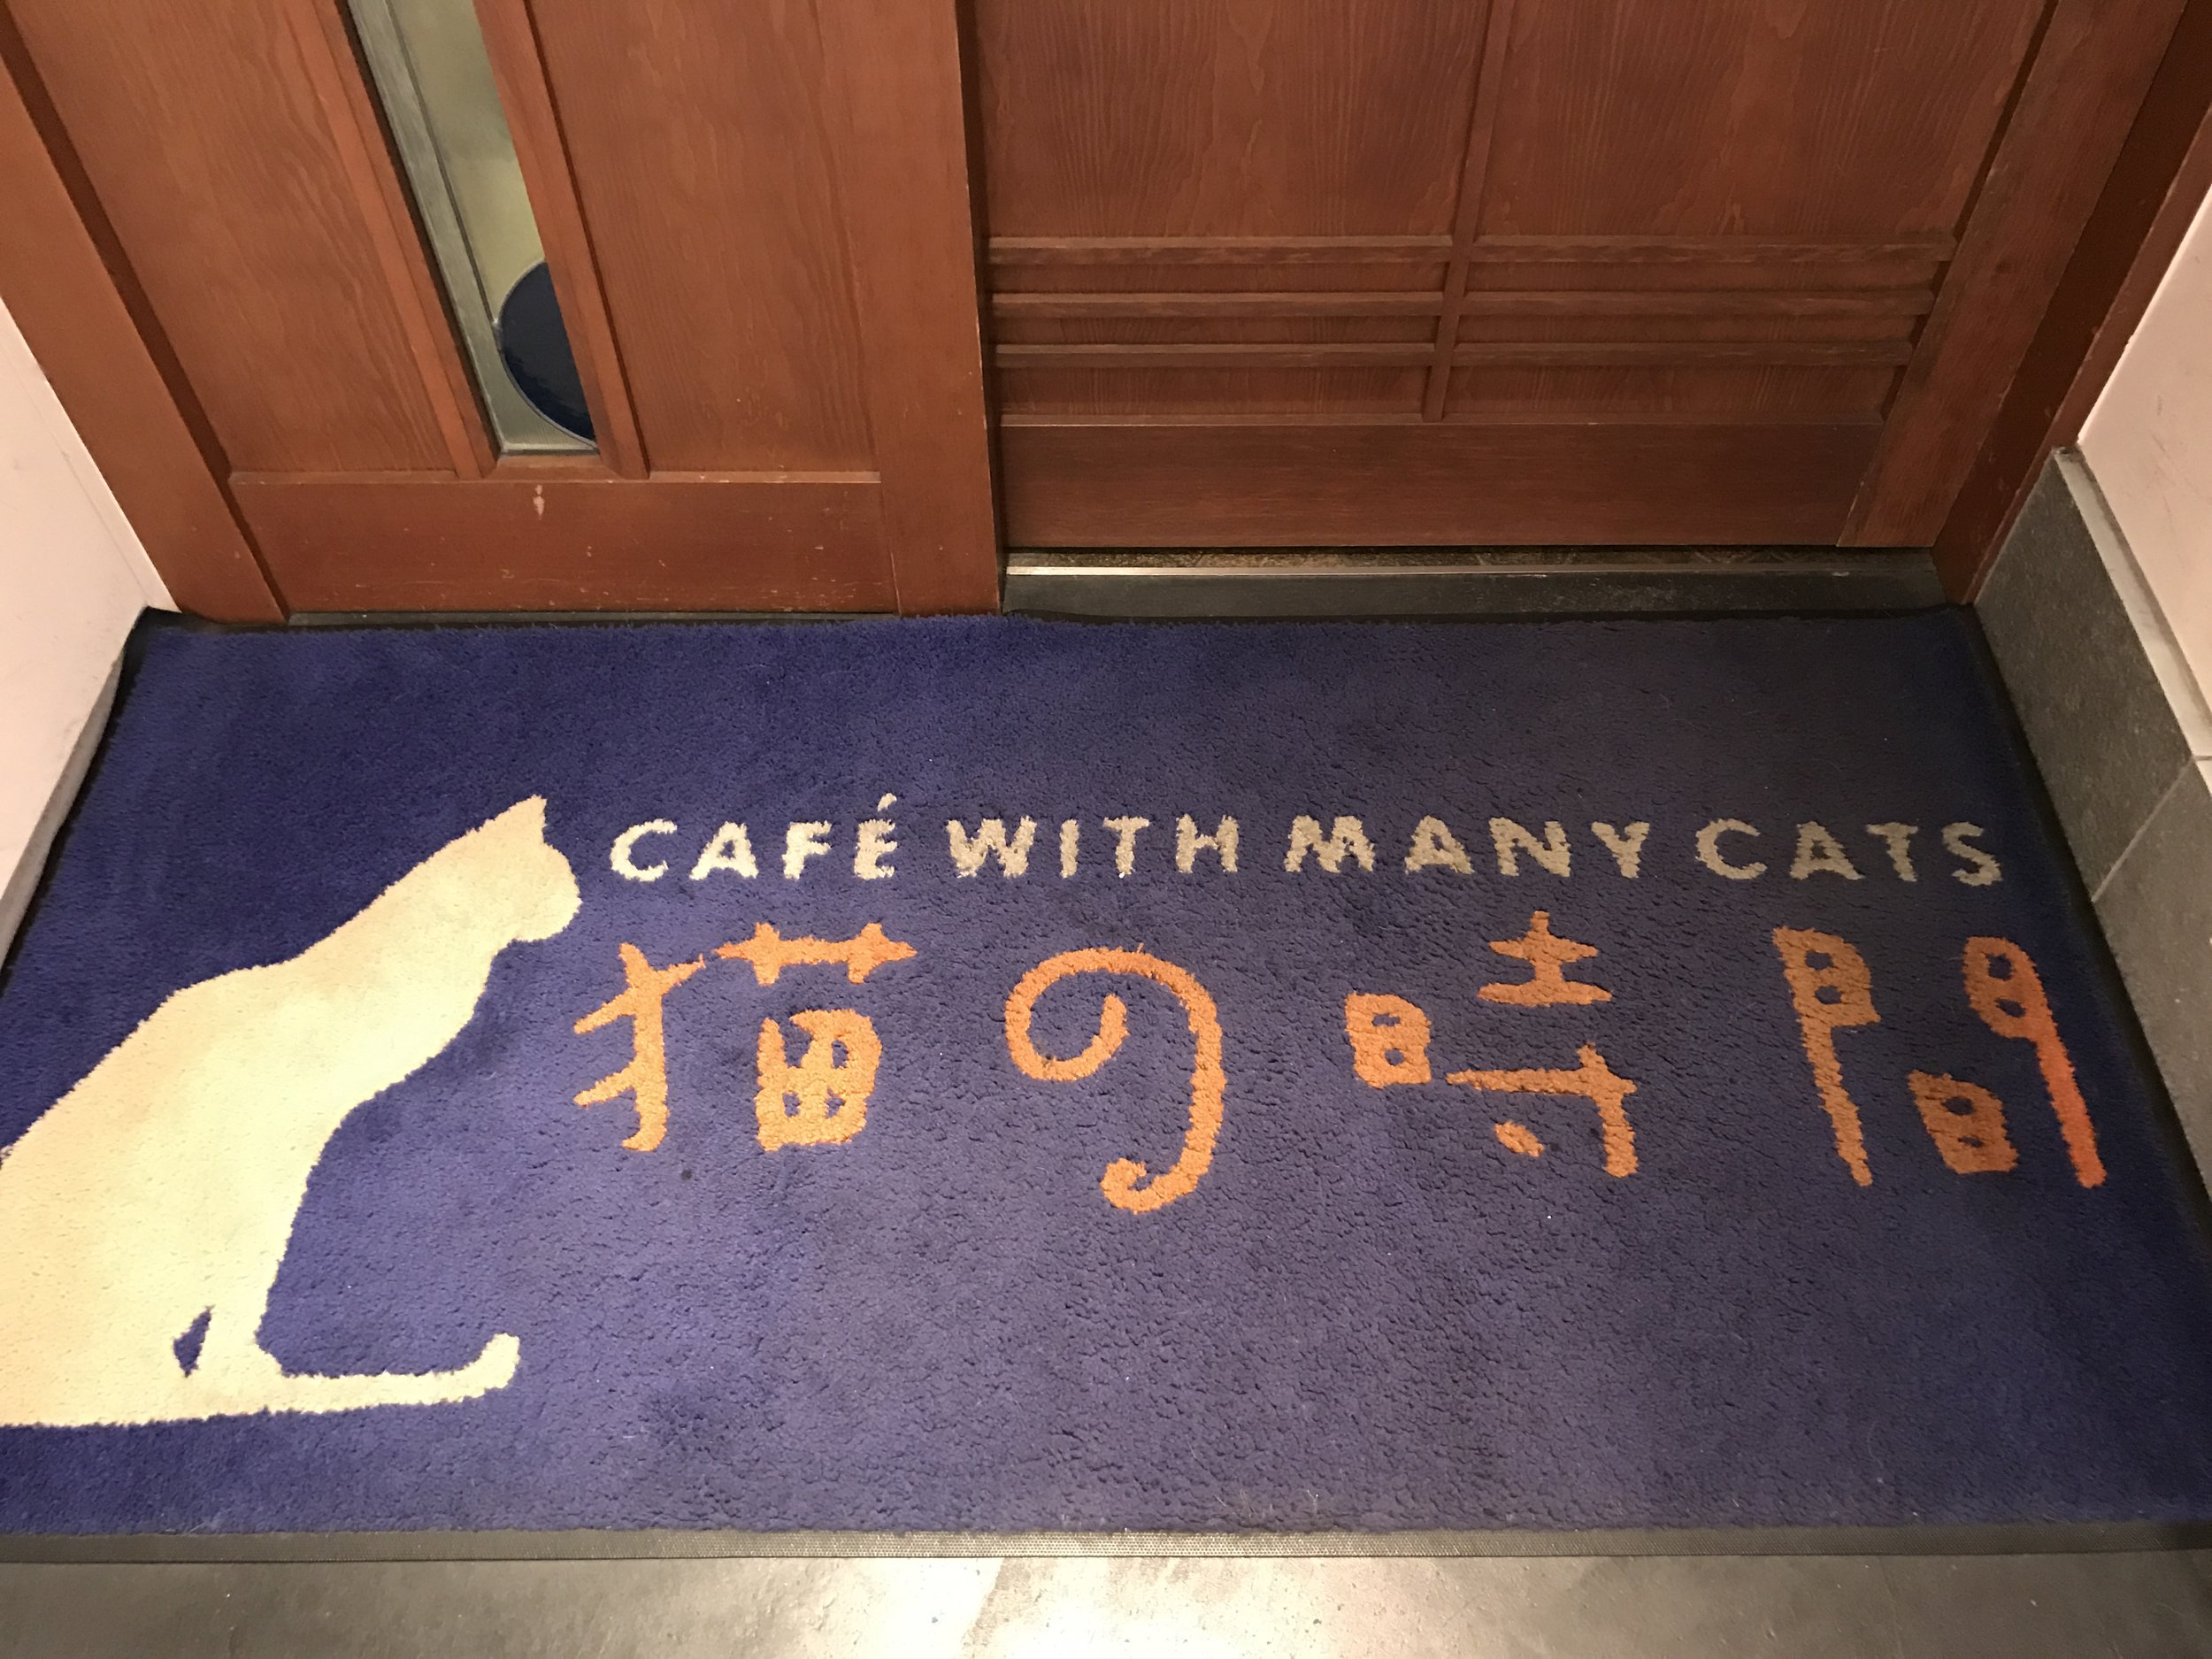 Neko no Jikan was the first cat cafe in Japan, opening in 2004